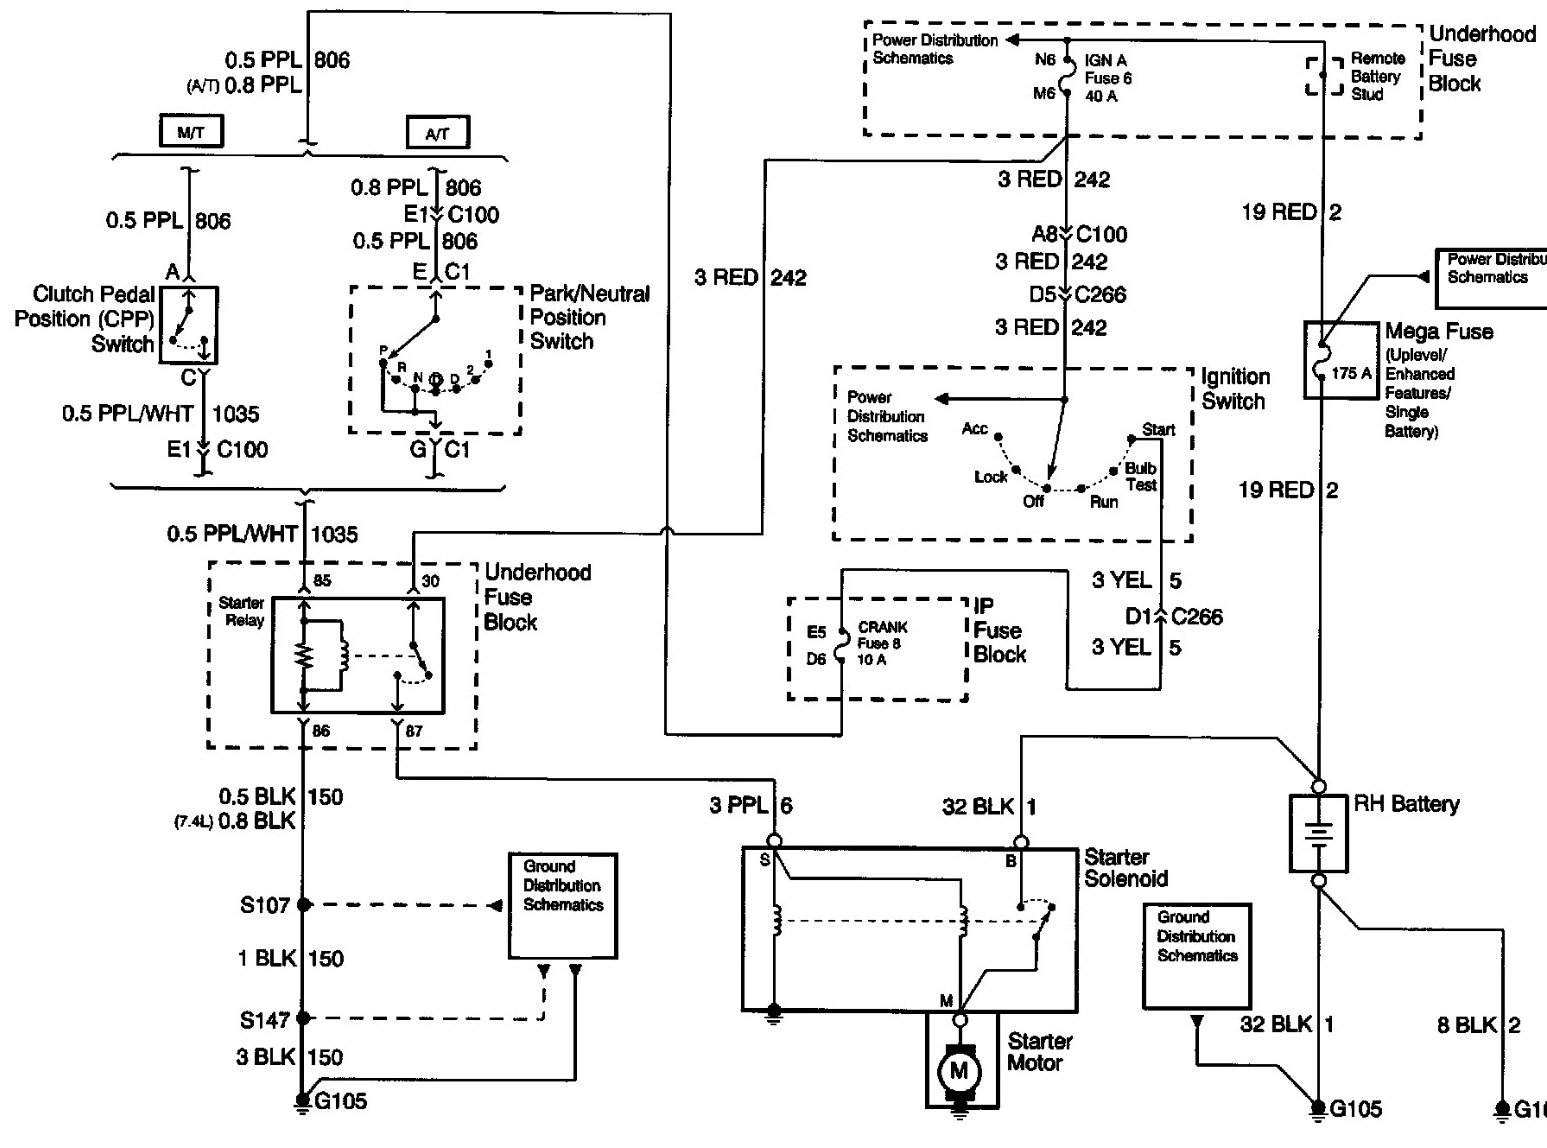 2002 cadillac escalade wiring diagram - wiring diagram schema seem-shape -  seem-shape.atmosphereconcept.it  atmosphereconcept.it